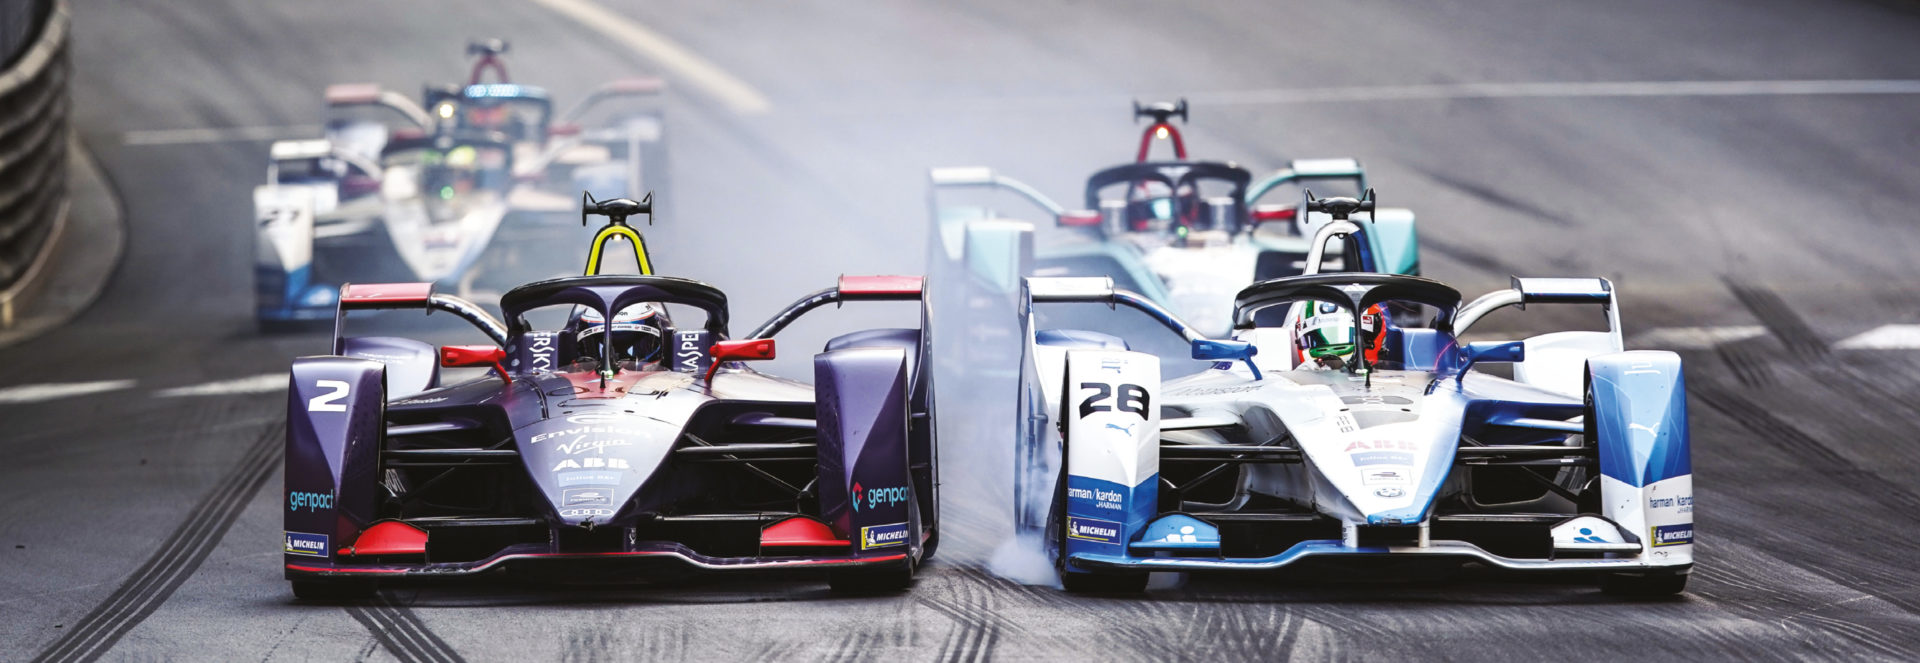 Formula E already boasts a strong manufacturer presence, with DS Virgin (left) and BMW two star teams